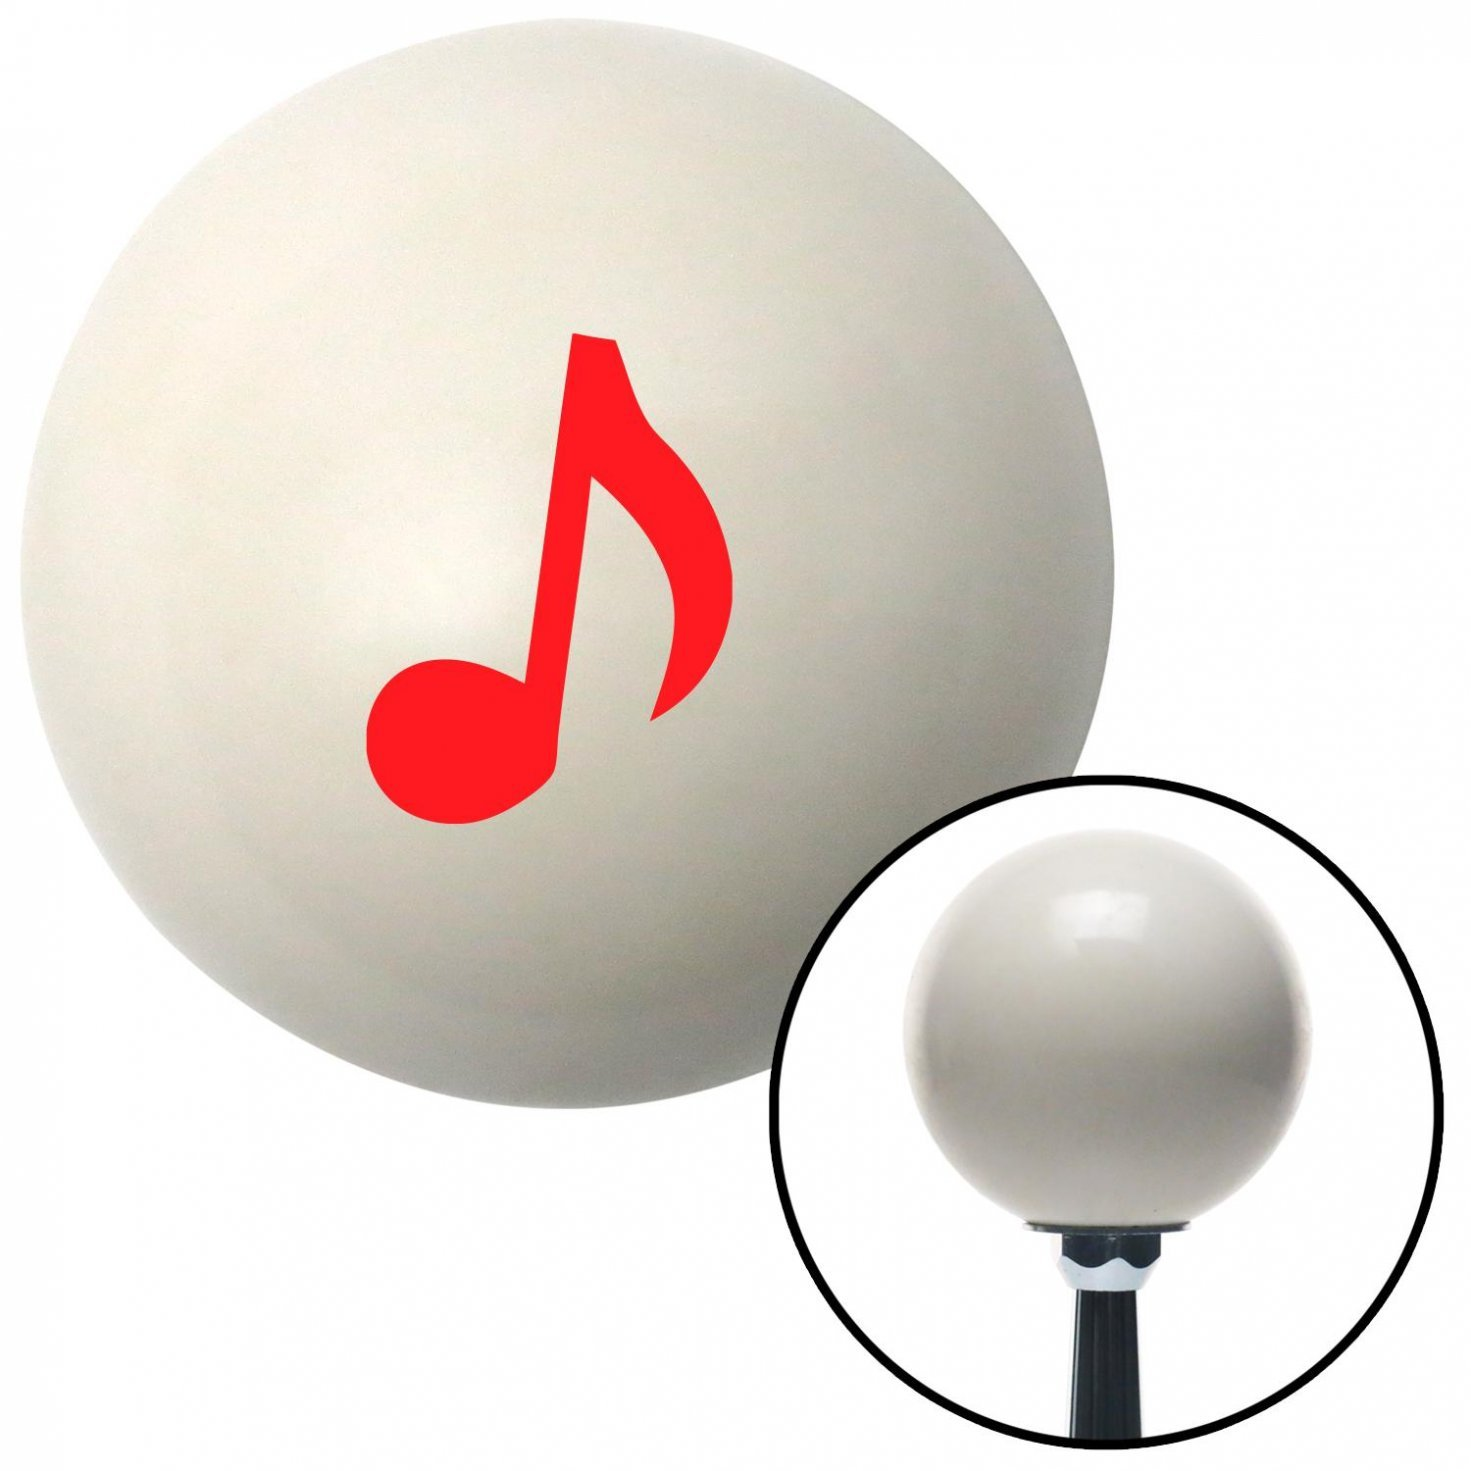 American Shifter 32064 Ivory Shift Knob with 16mm x 1.5 Insert Red Music Note